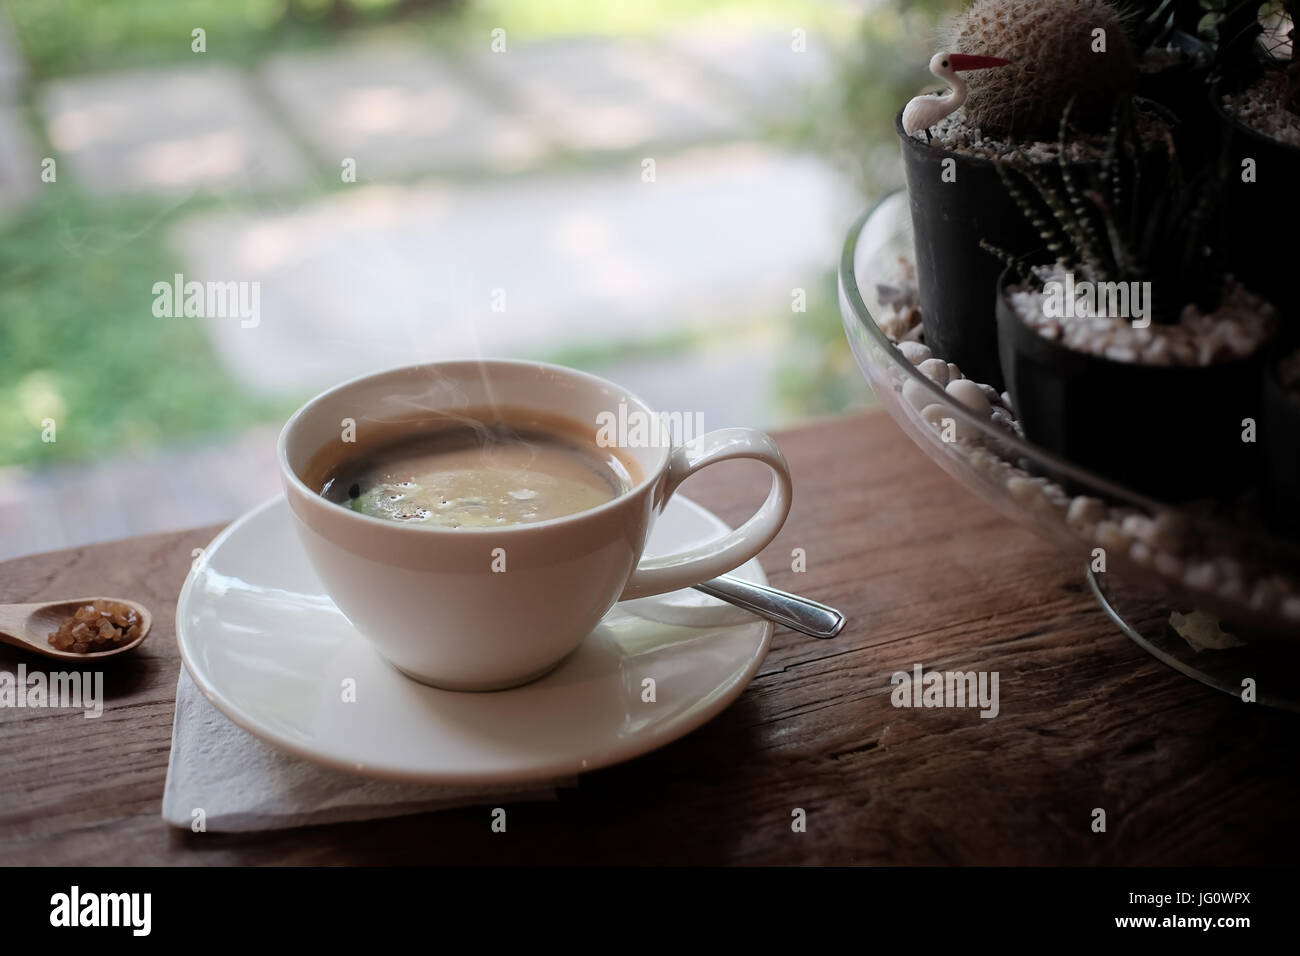 cup of coffee americano, coffee morning concept. - Stock Image